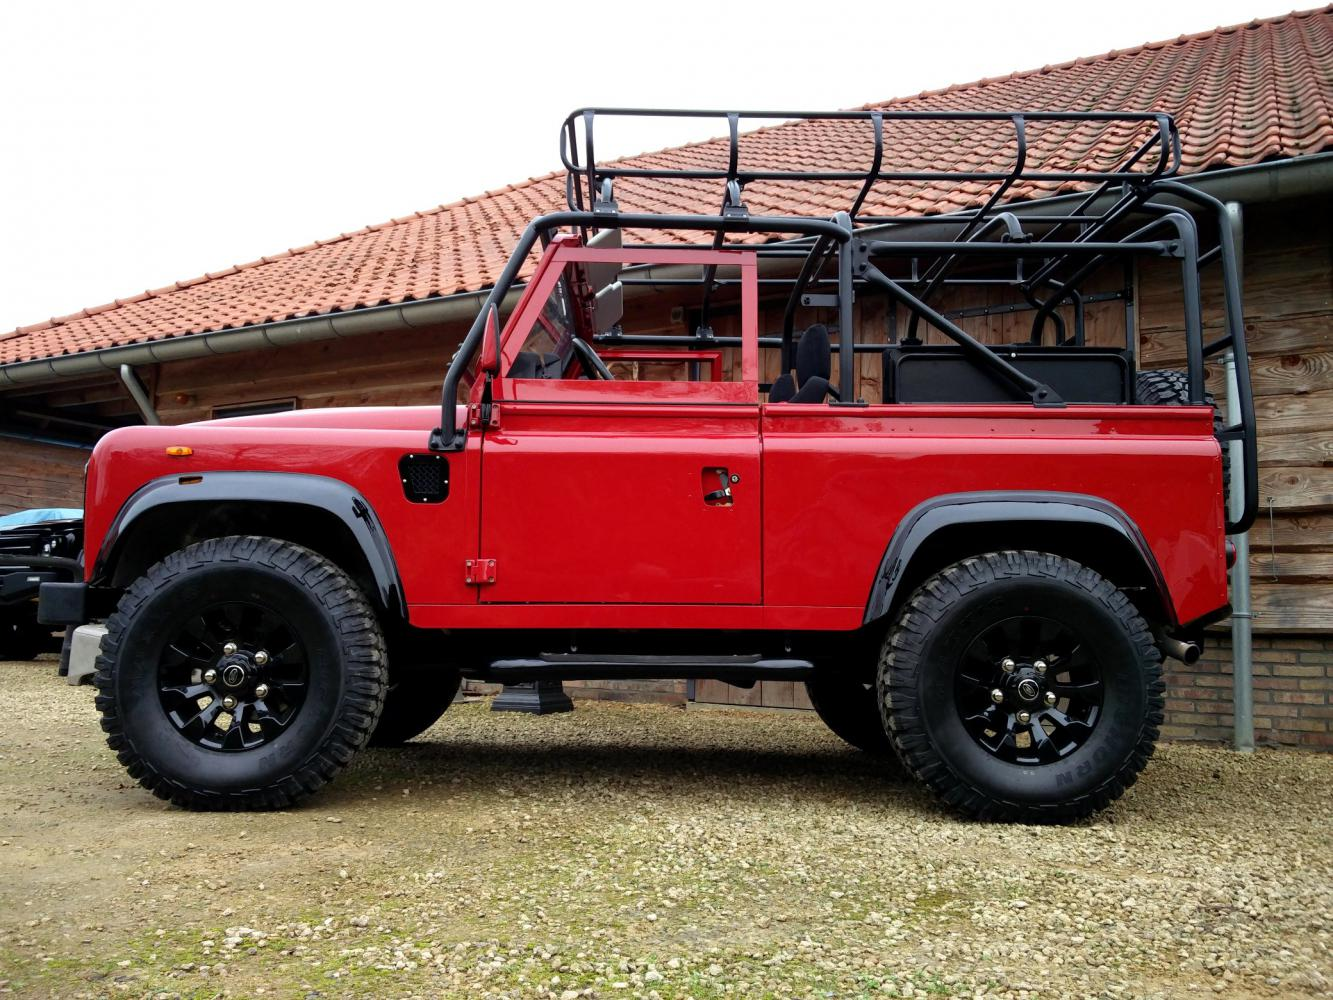 Click image for larger version  Name:1992 LR LHD Defender 90 Red 200 Tdi A day 15 left side low.jpg Views:50 Size:240.2 KB ID:323729